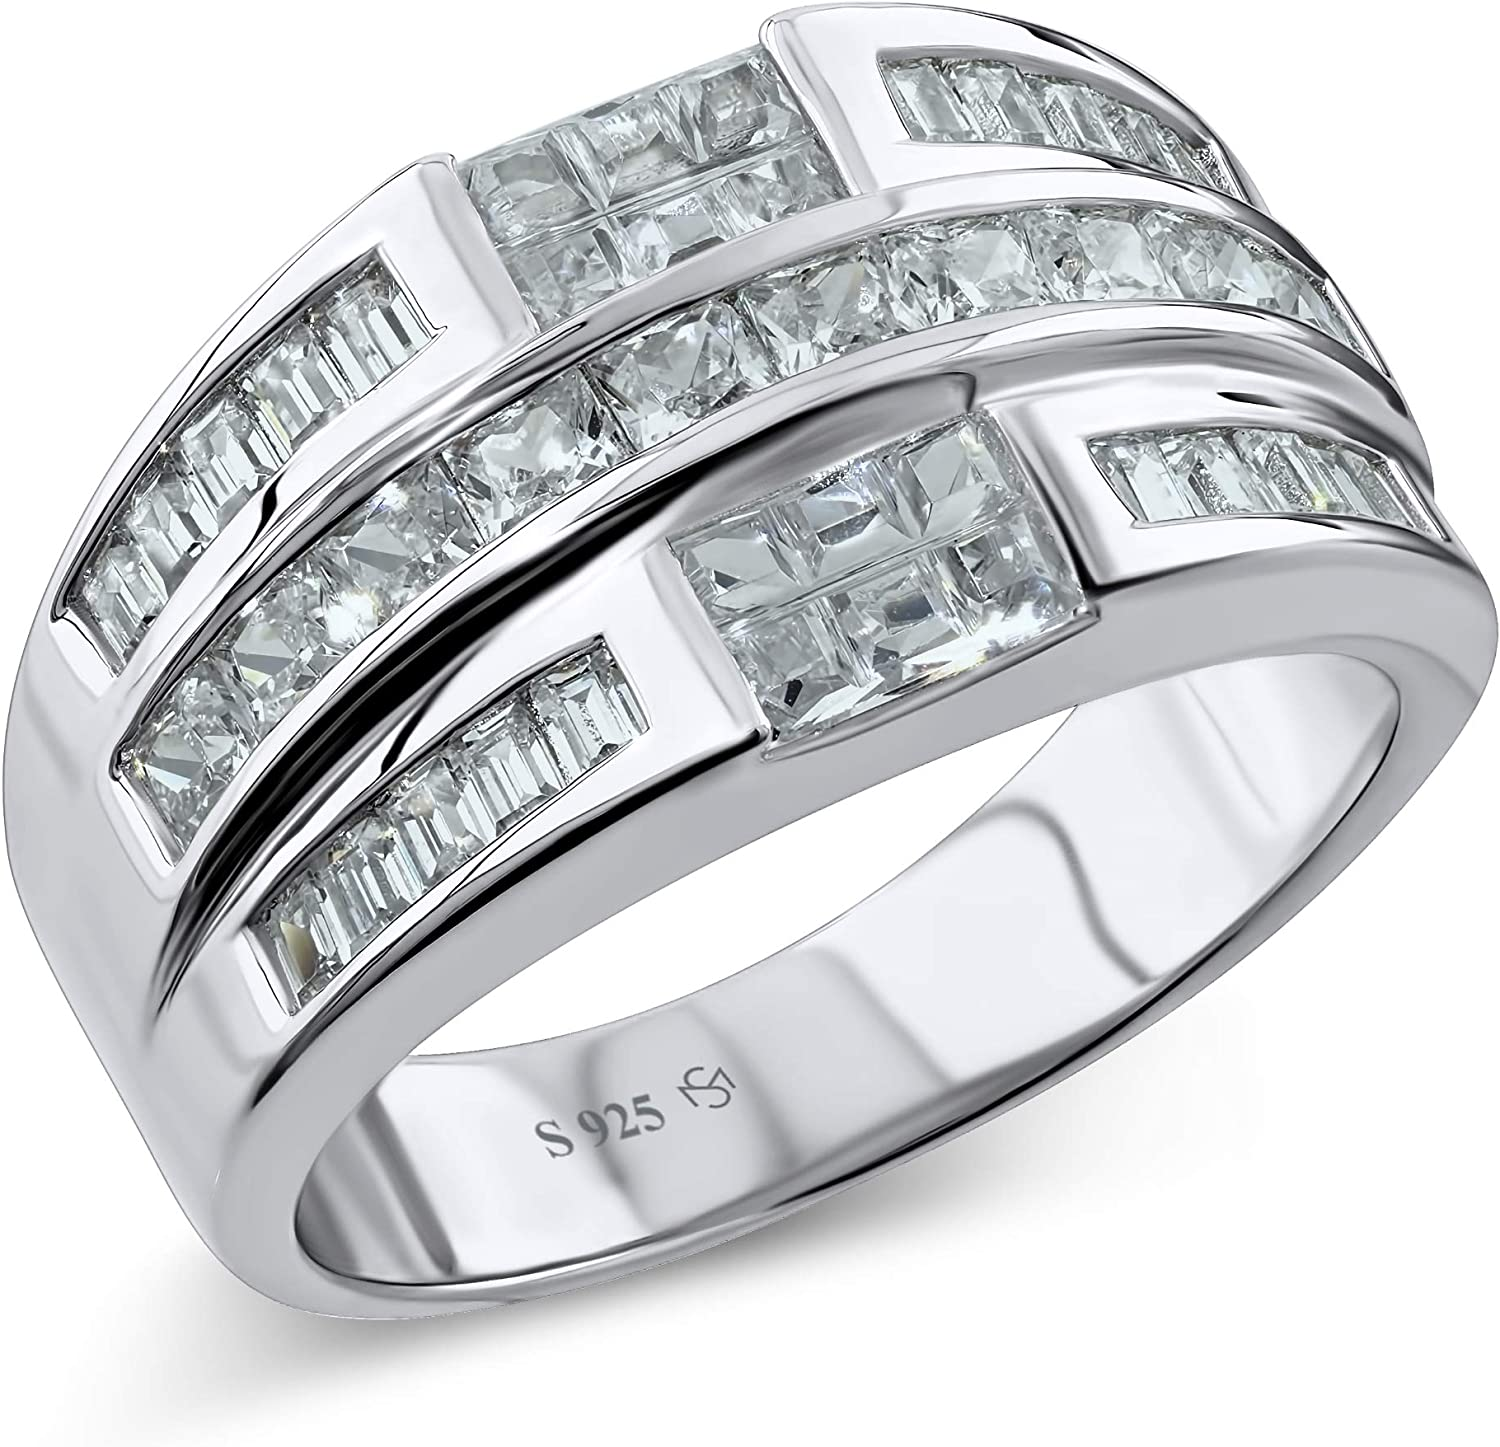 [2-5 Days Delivery] Men's Sterling Silver .925 Ring Band Featuring 32 Baguette and Square Cubic Zirconia (CZ) Stones, Platinum Plated Jewelry